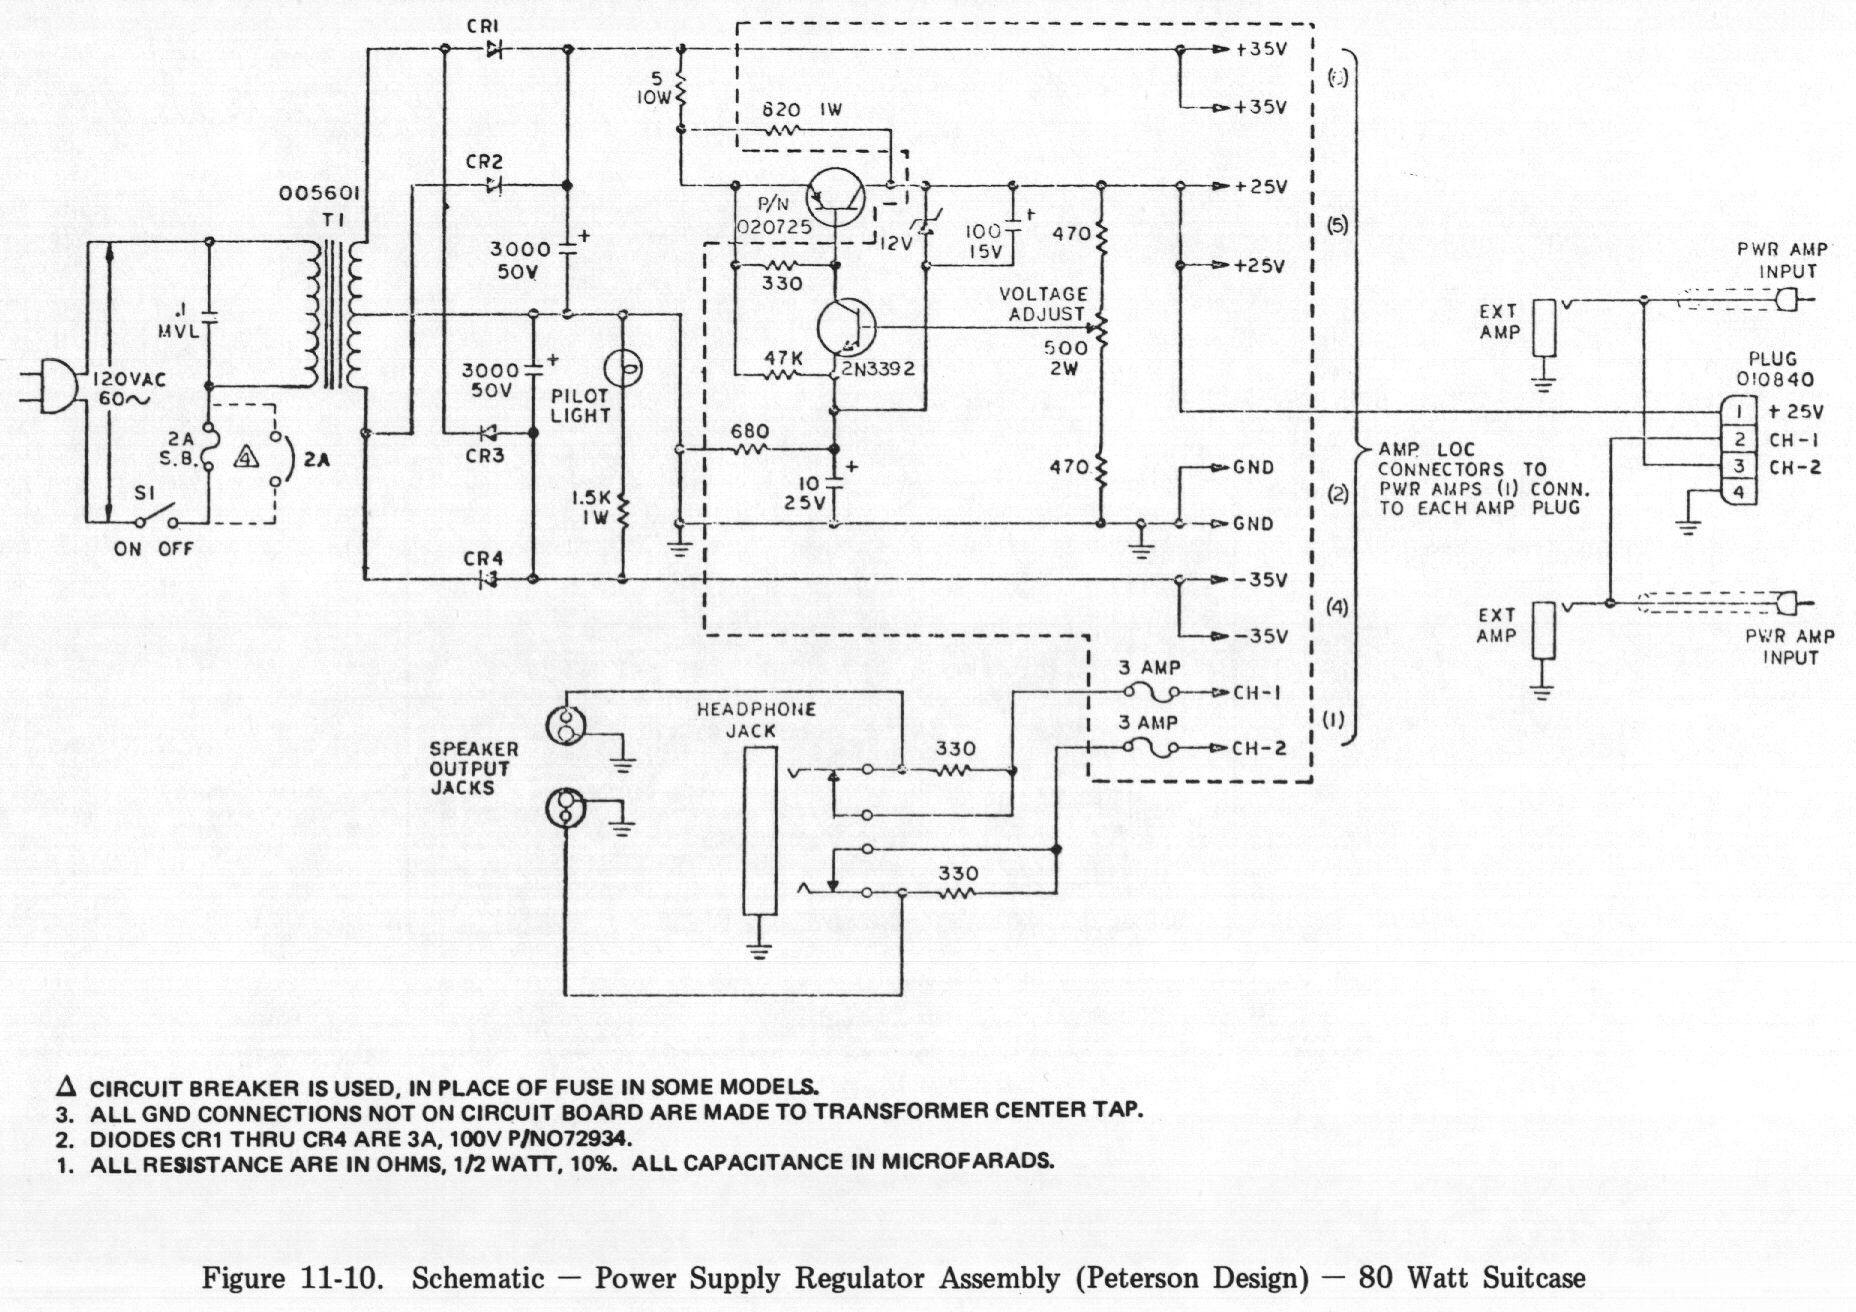 Chapter 11 Diagrams Schematics And Pictorials Printed Circuit Board